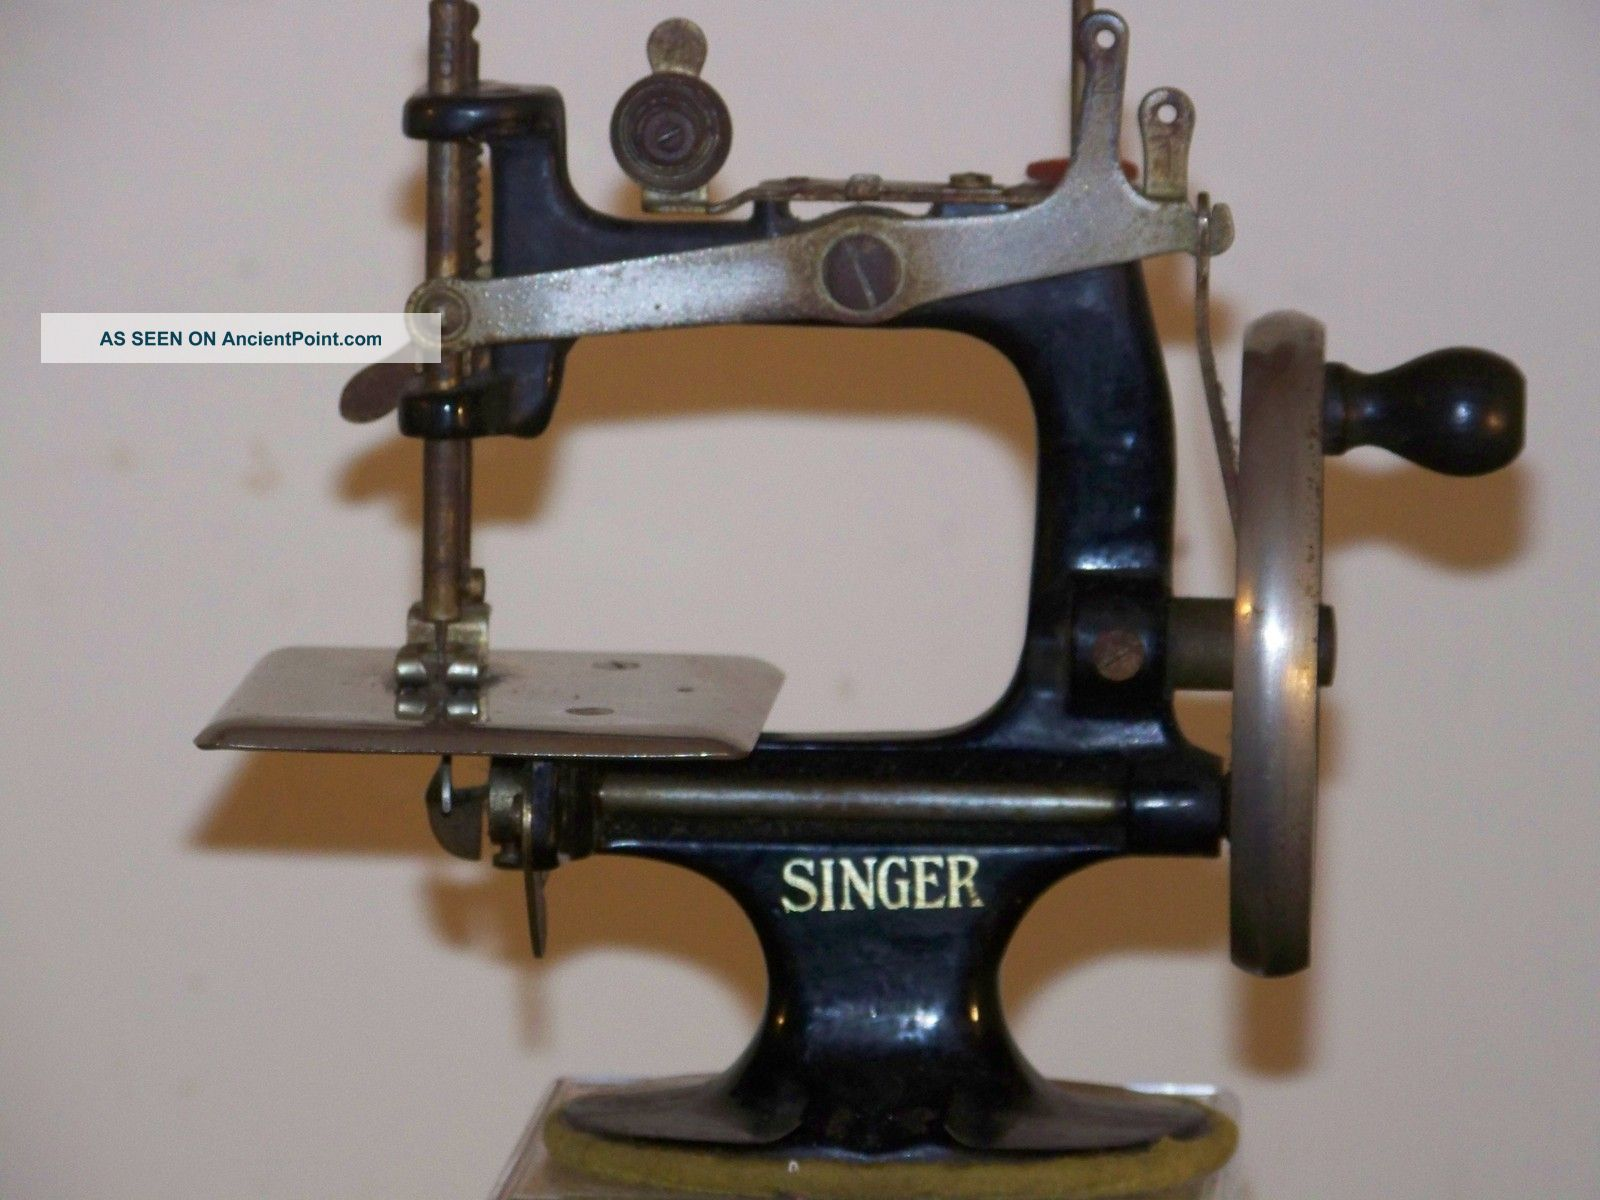 Singer Sewhandy Child Sewing Machine 20 Black C1920 ' S - Fully Operational Sewing Machines photo